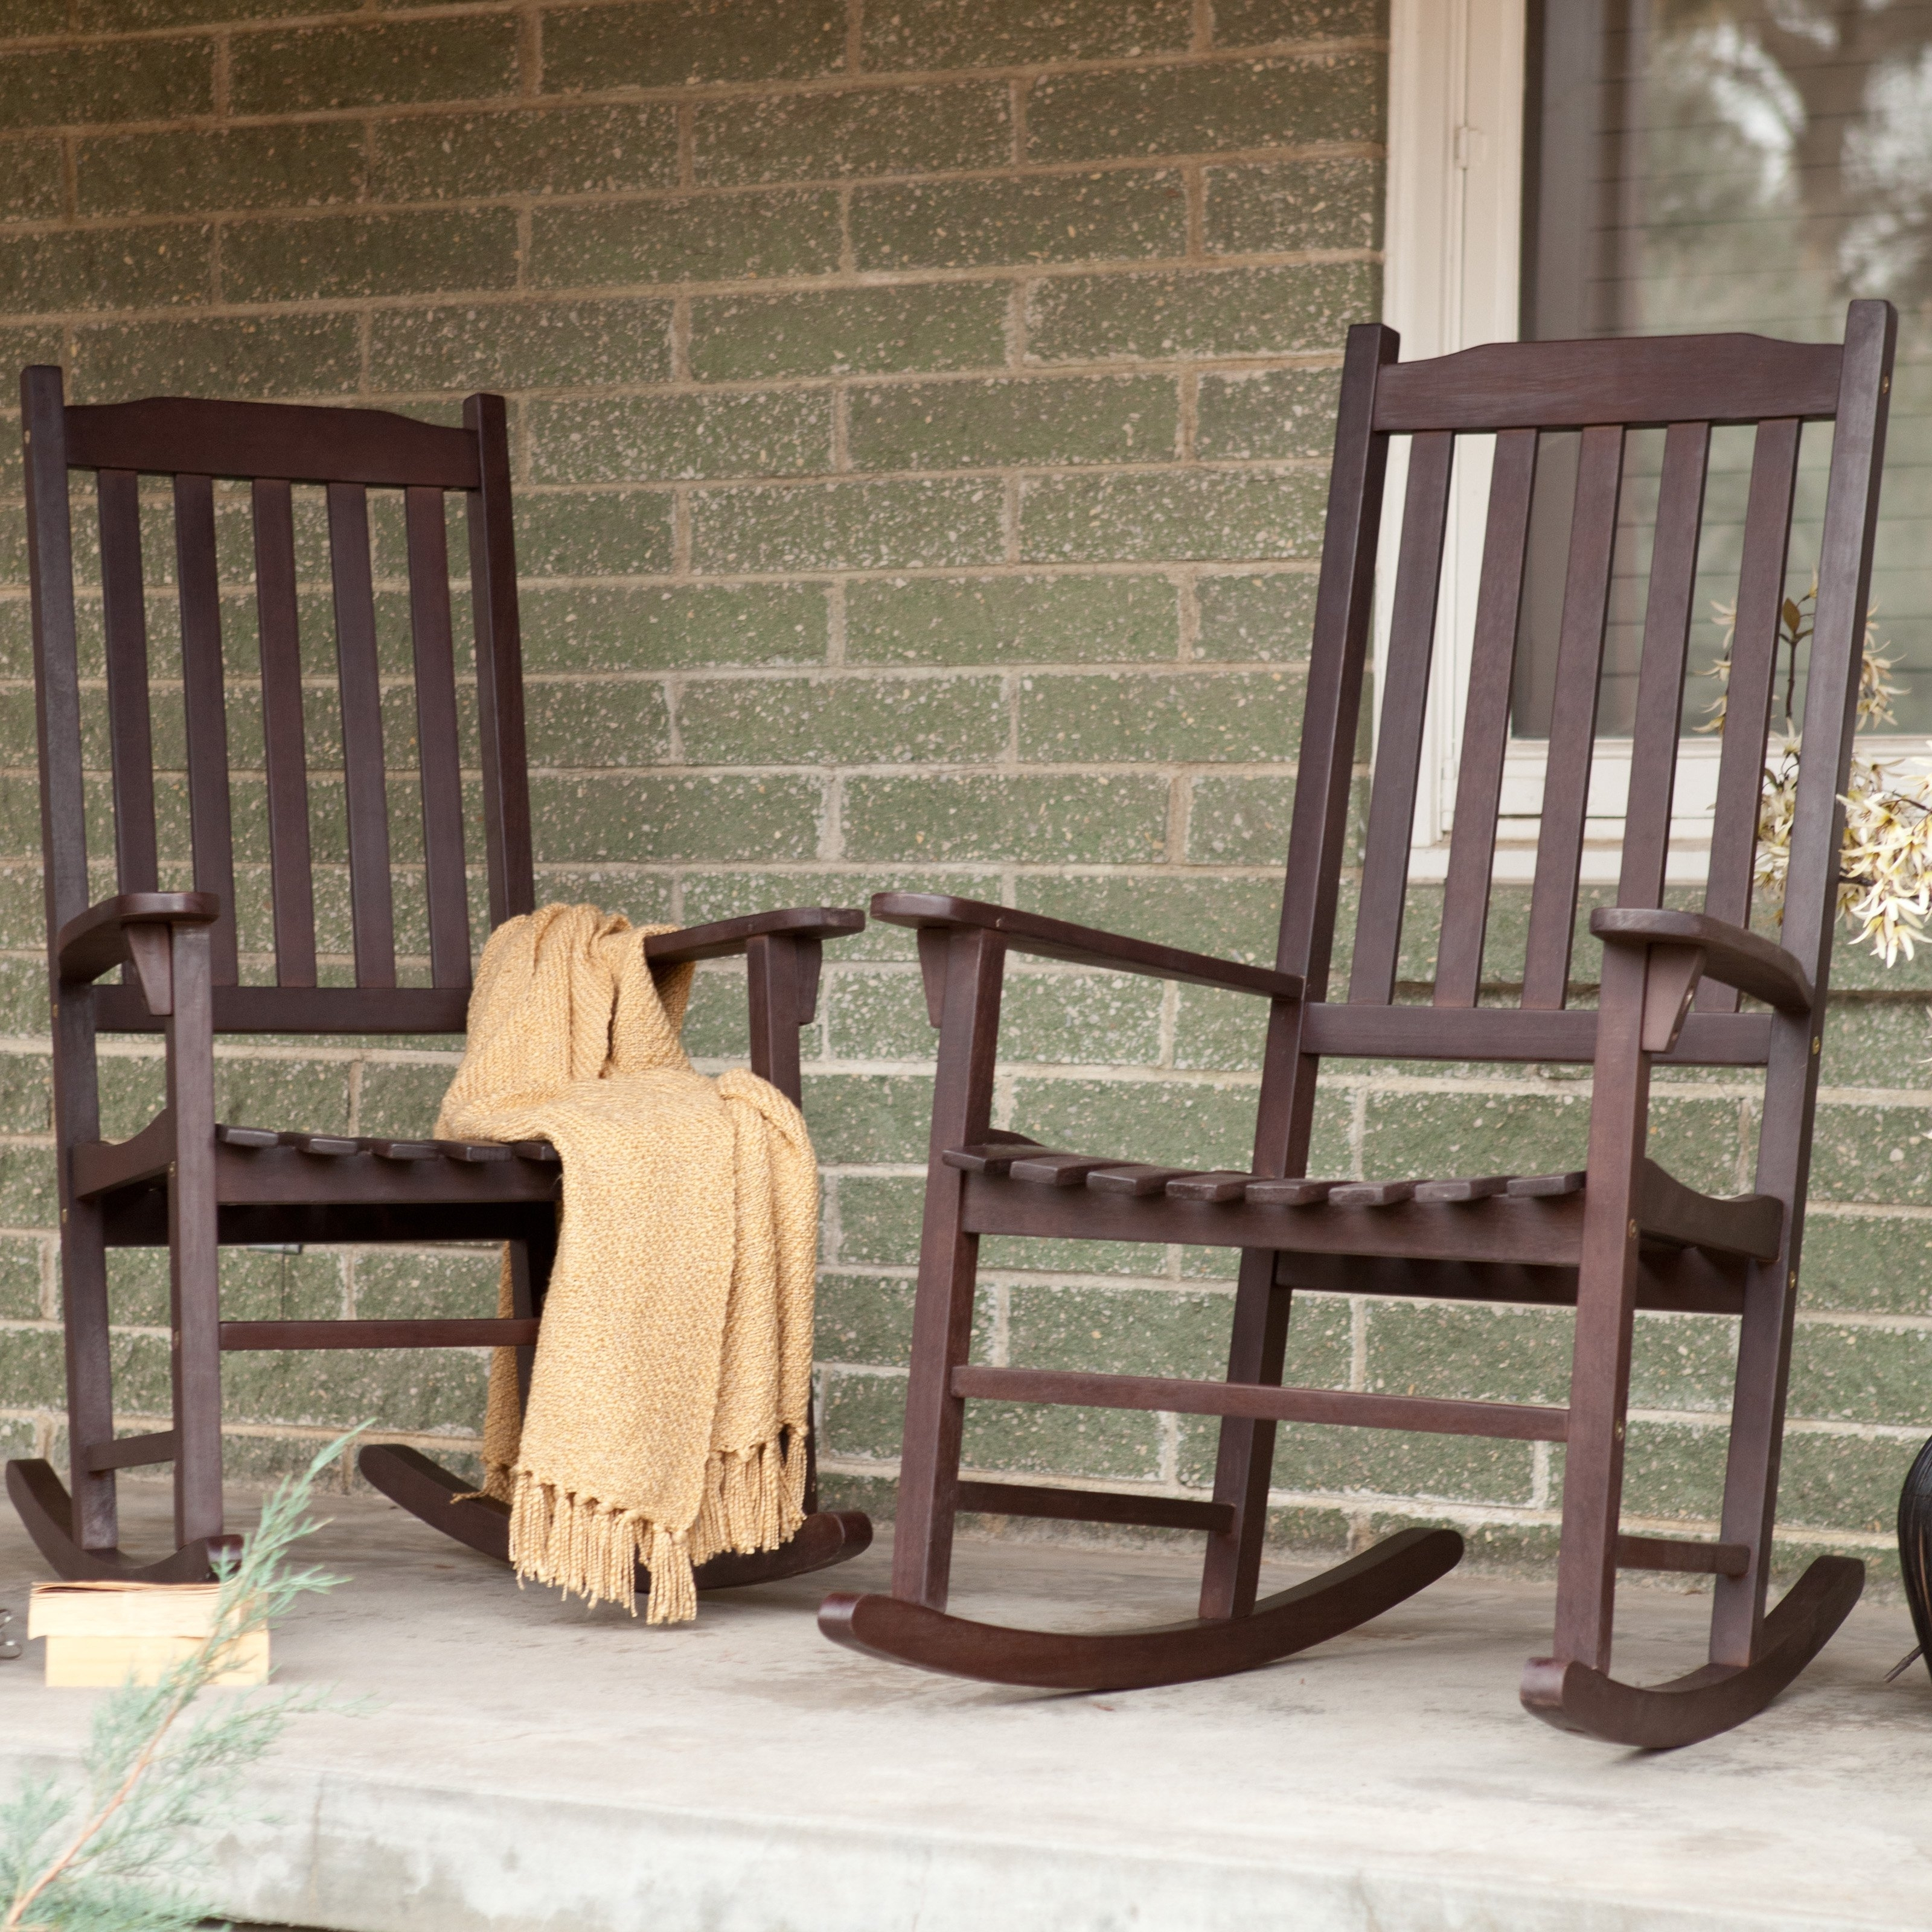 How To Choose Comfortable Outdoor Rocking Chairs – Yonohomedesign Pertaining To Unique Outdoor Rocking Chairs (#7 of 15)